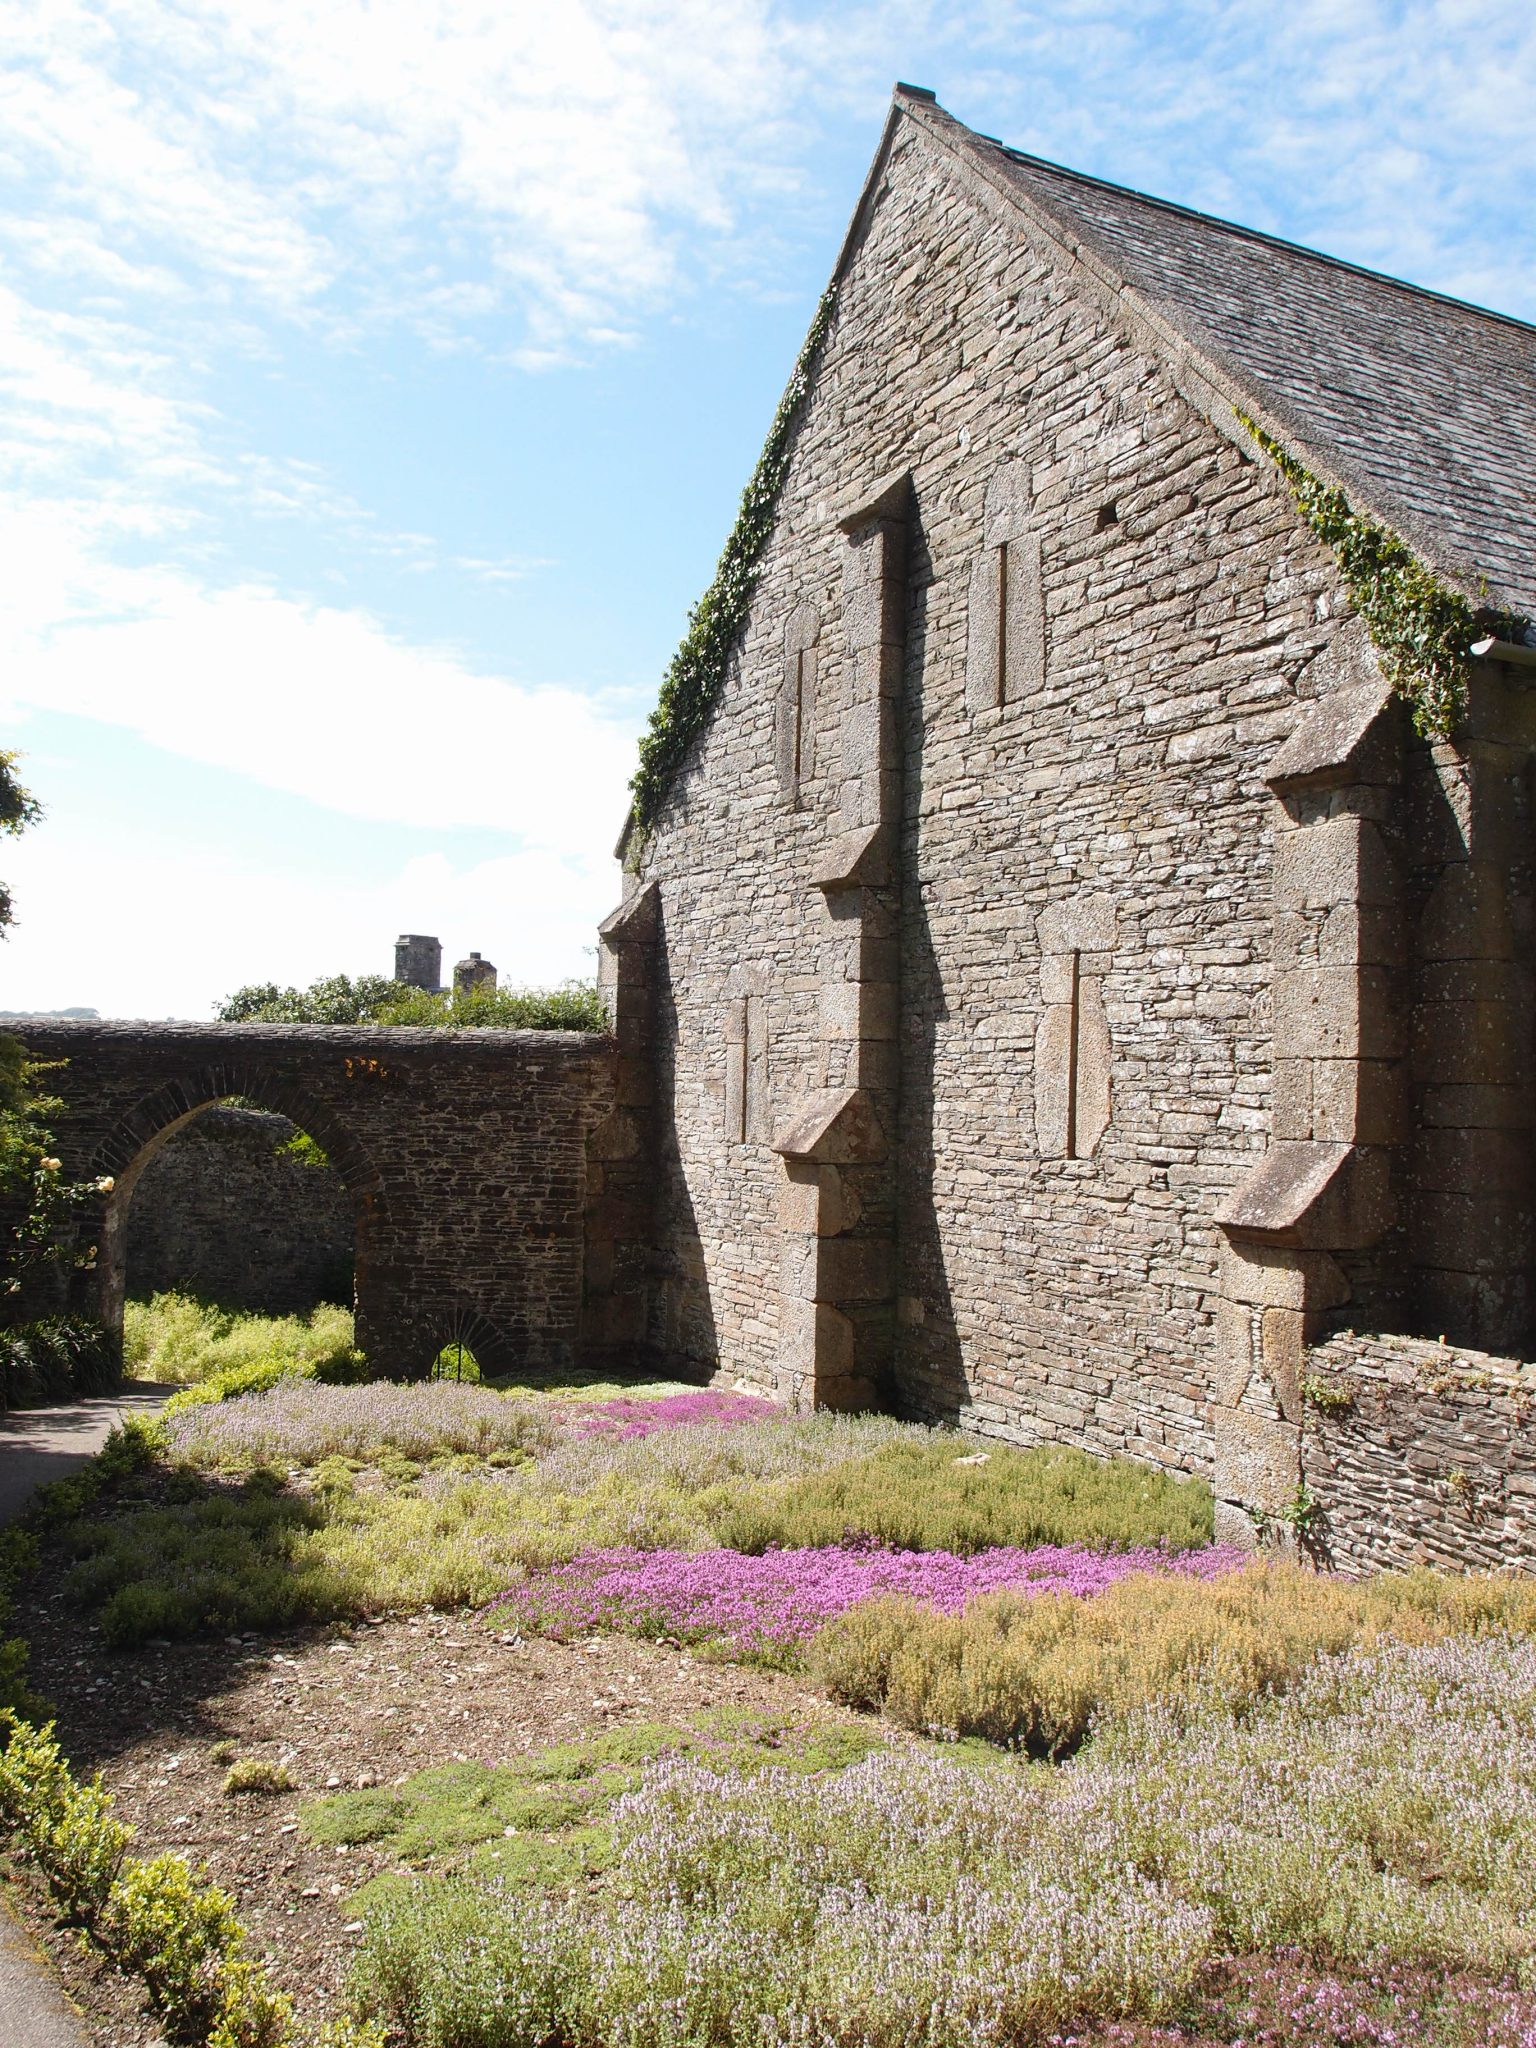 The Herb Garden, and the Great Barn